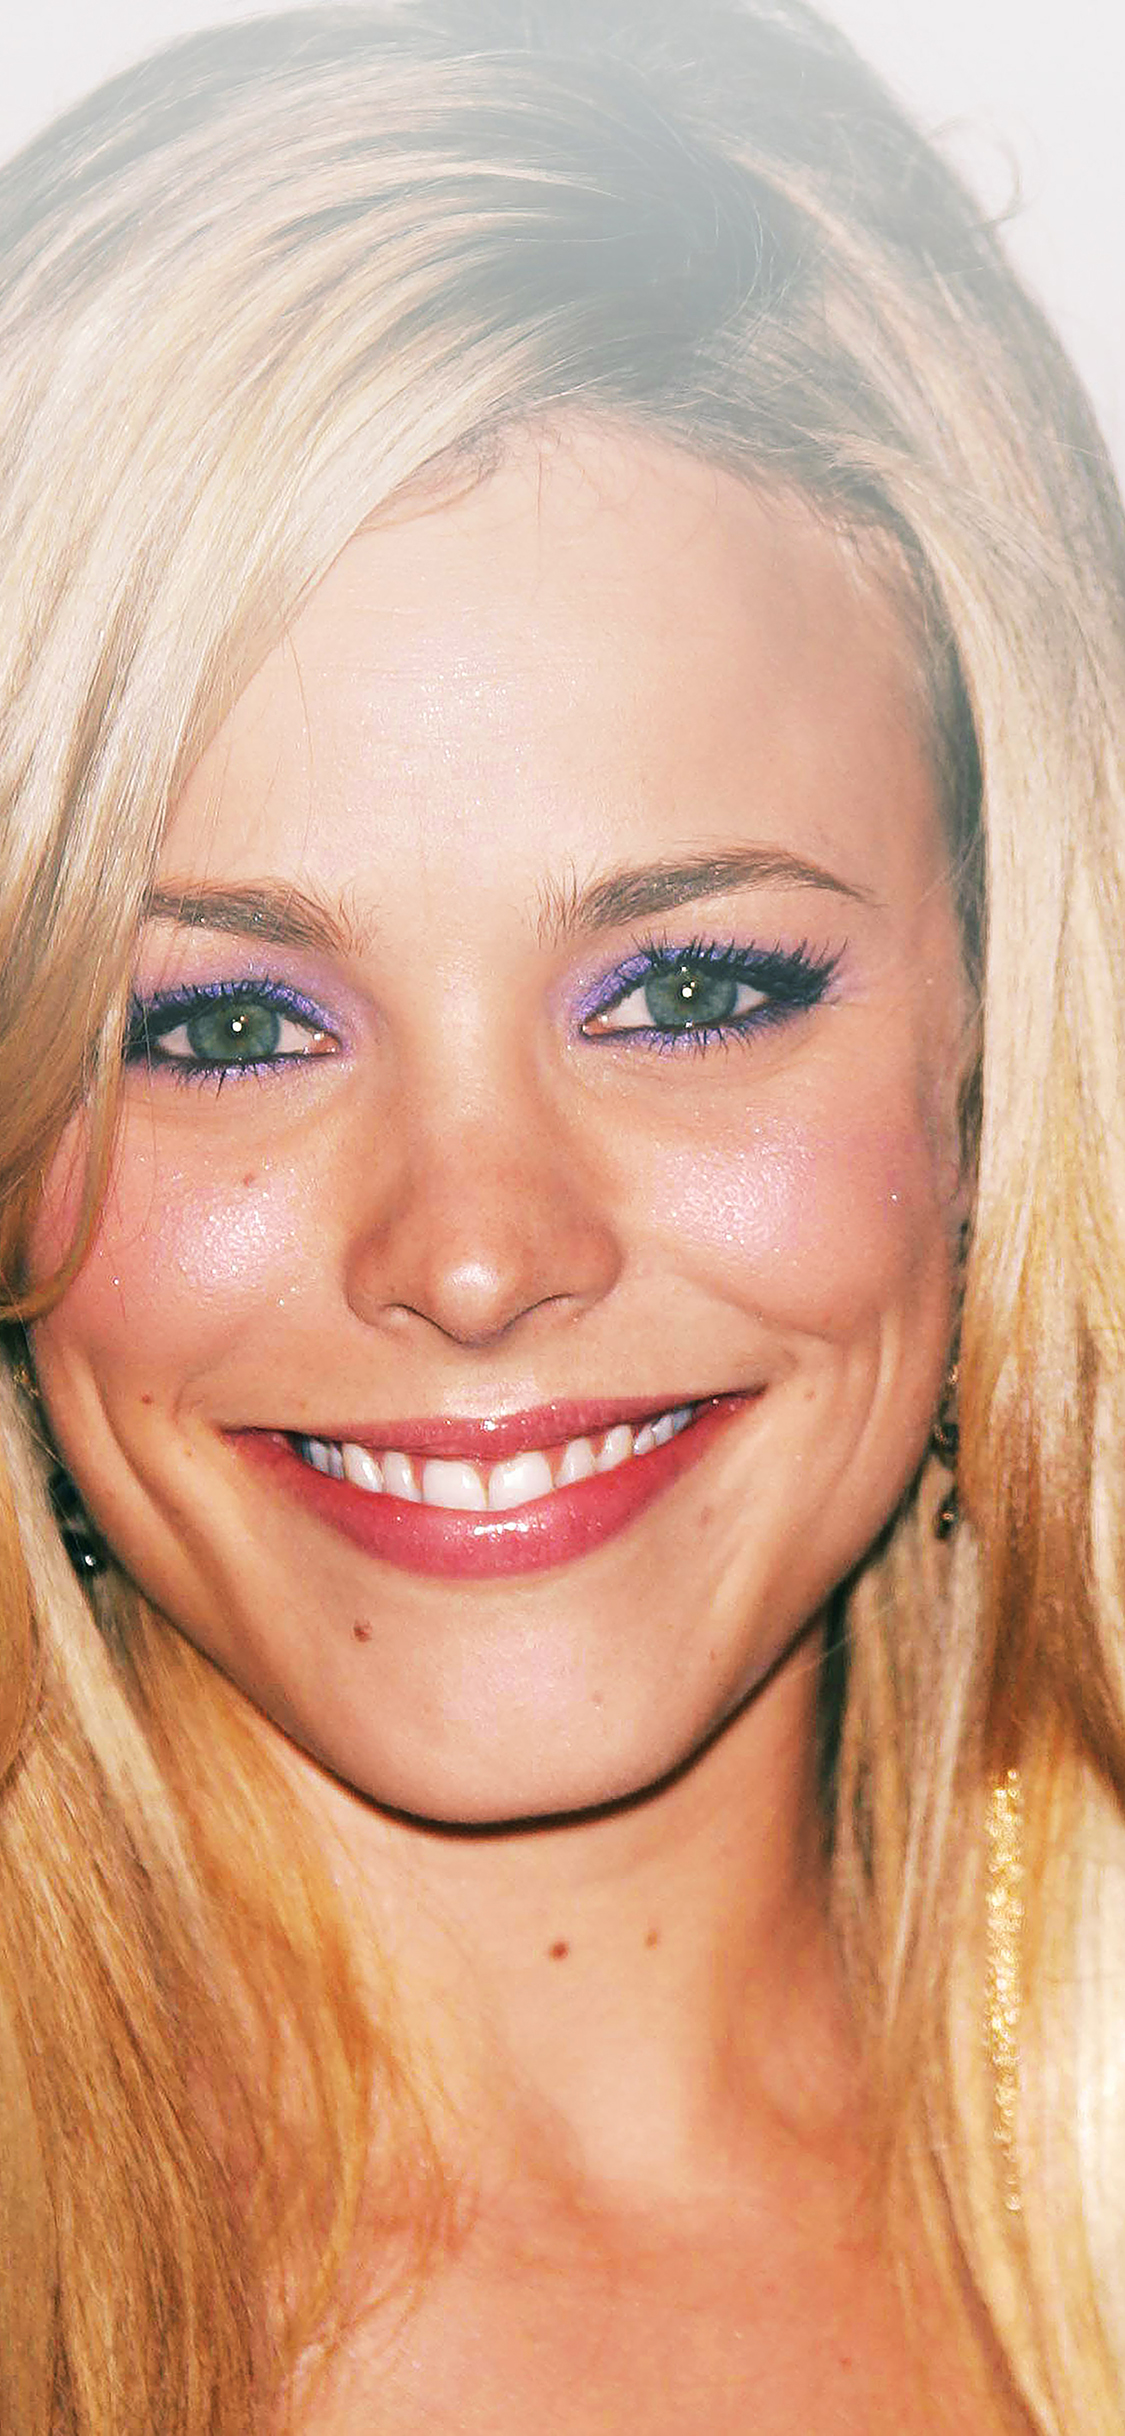 Anime Girl Wallpapers Phone Ha22 Rachel Mcadams Film Girl Face Papers Co